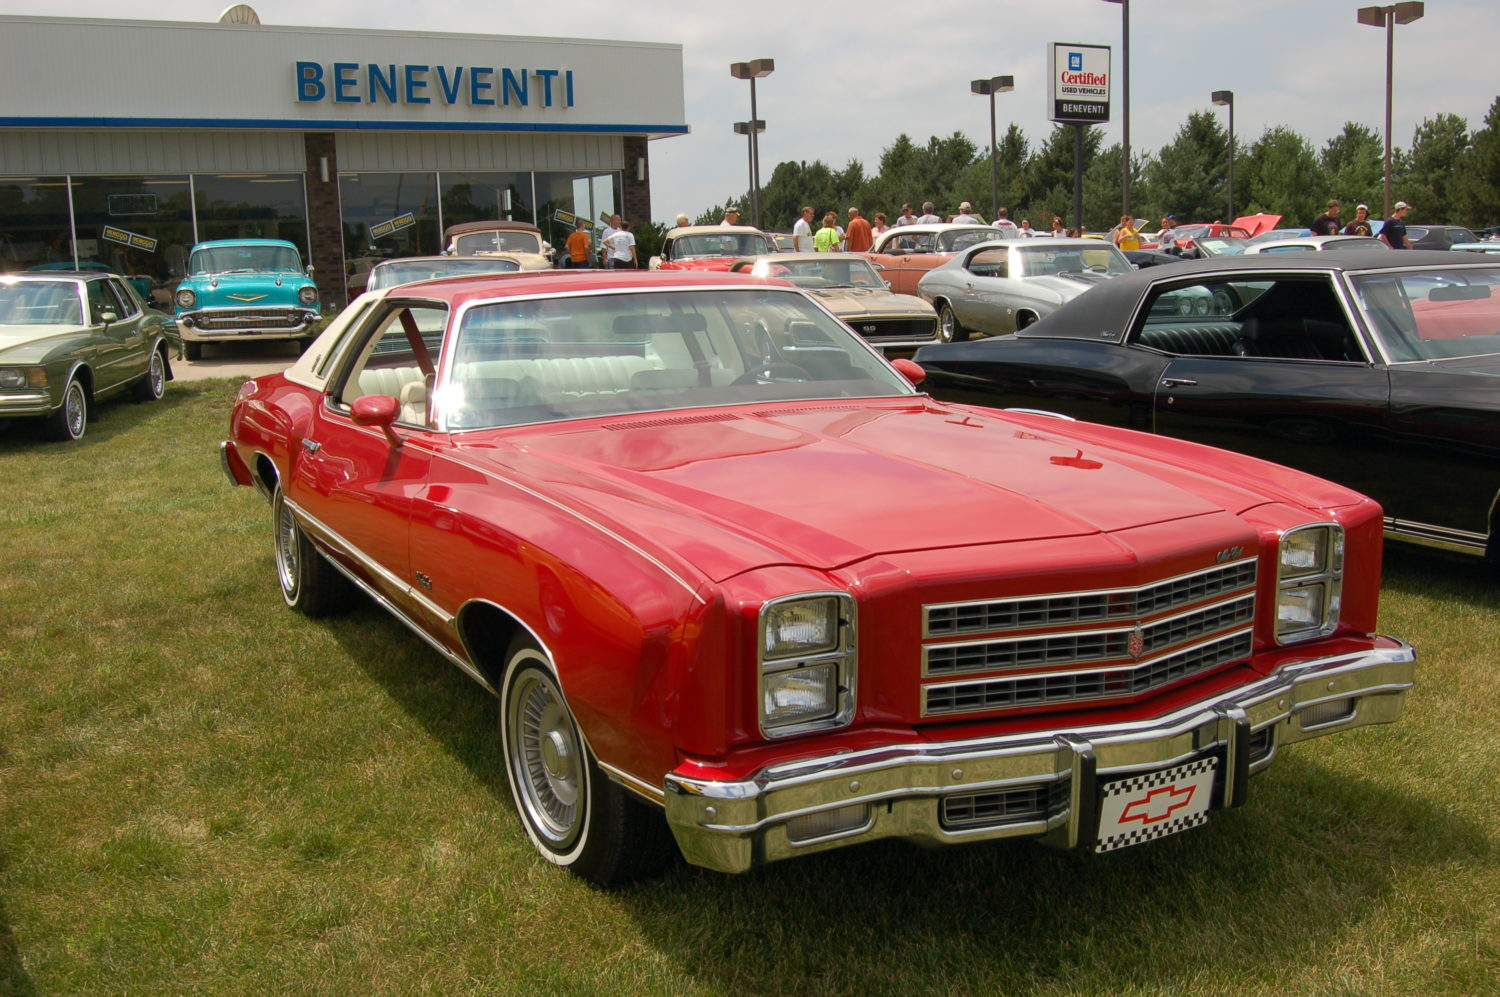 Fabulous Chevrolet Collector Cars- The Don Beneventi Collection - image 11